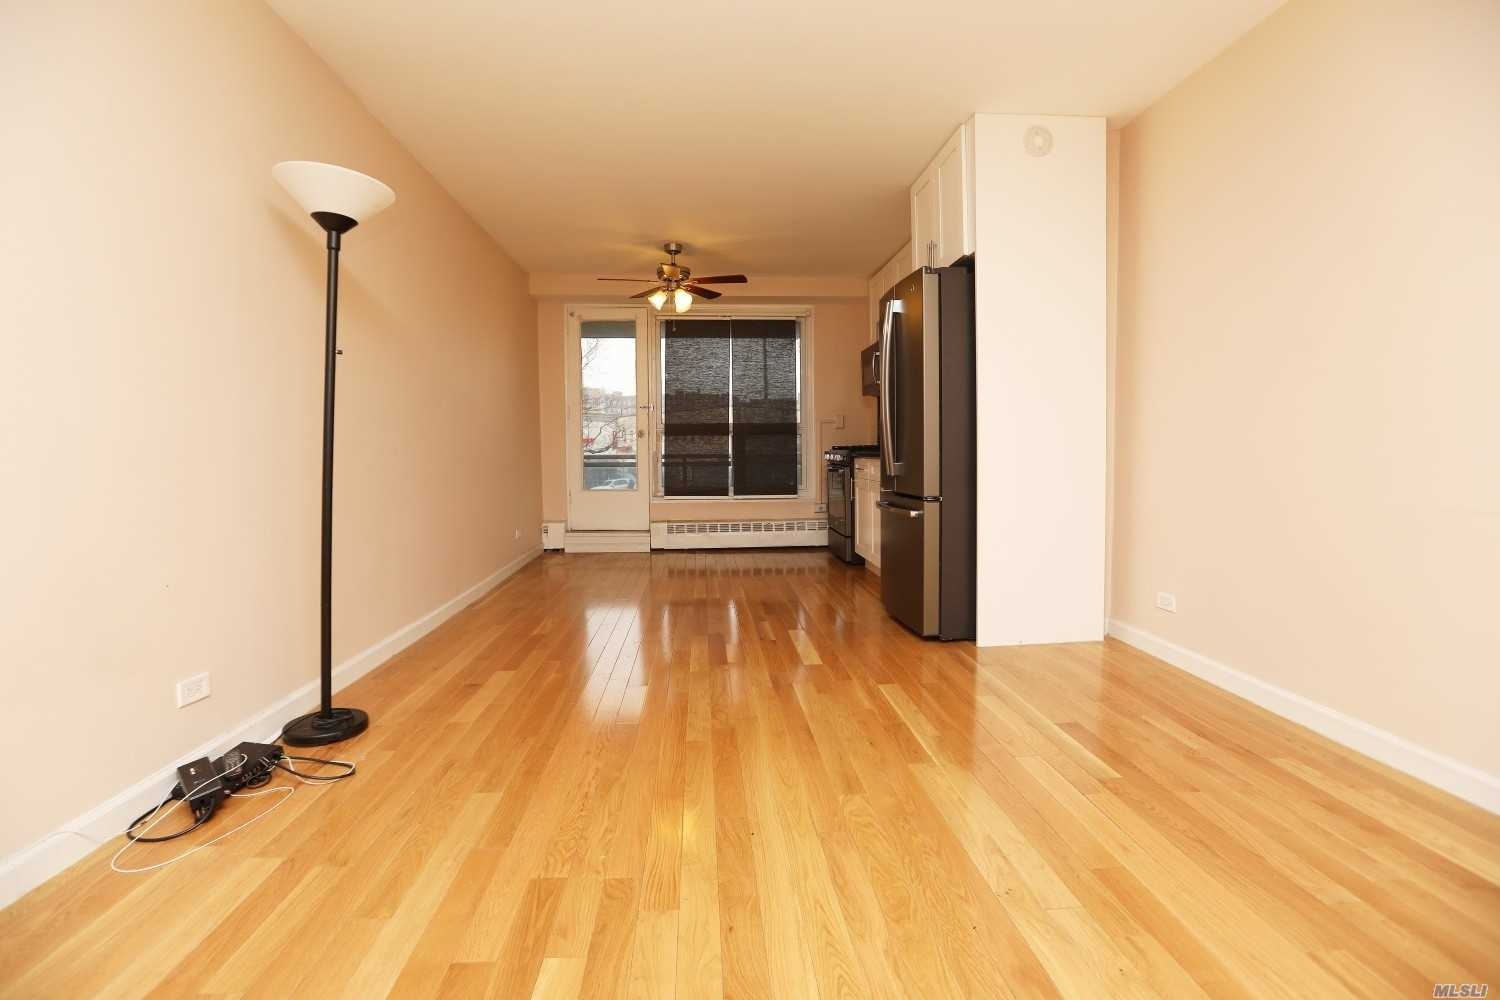 Brand New Studio, Very Spacious With Terrace, South Exposure, Brand New Kitchen & Bathroom, Building Offers Indoor Garage, 24Hrs Doorman, Laundry, Pets Friendly, Cat And Dog, Private Park & Swimming Pool, Close To Shopping Center & Subway.